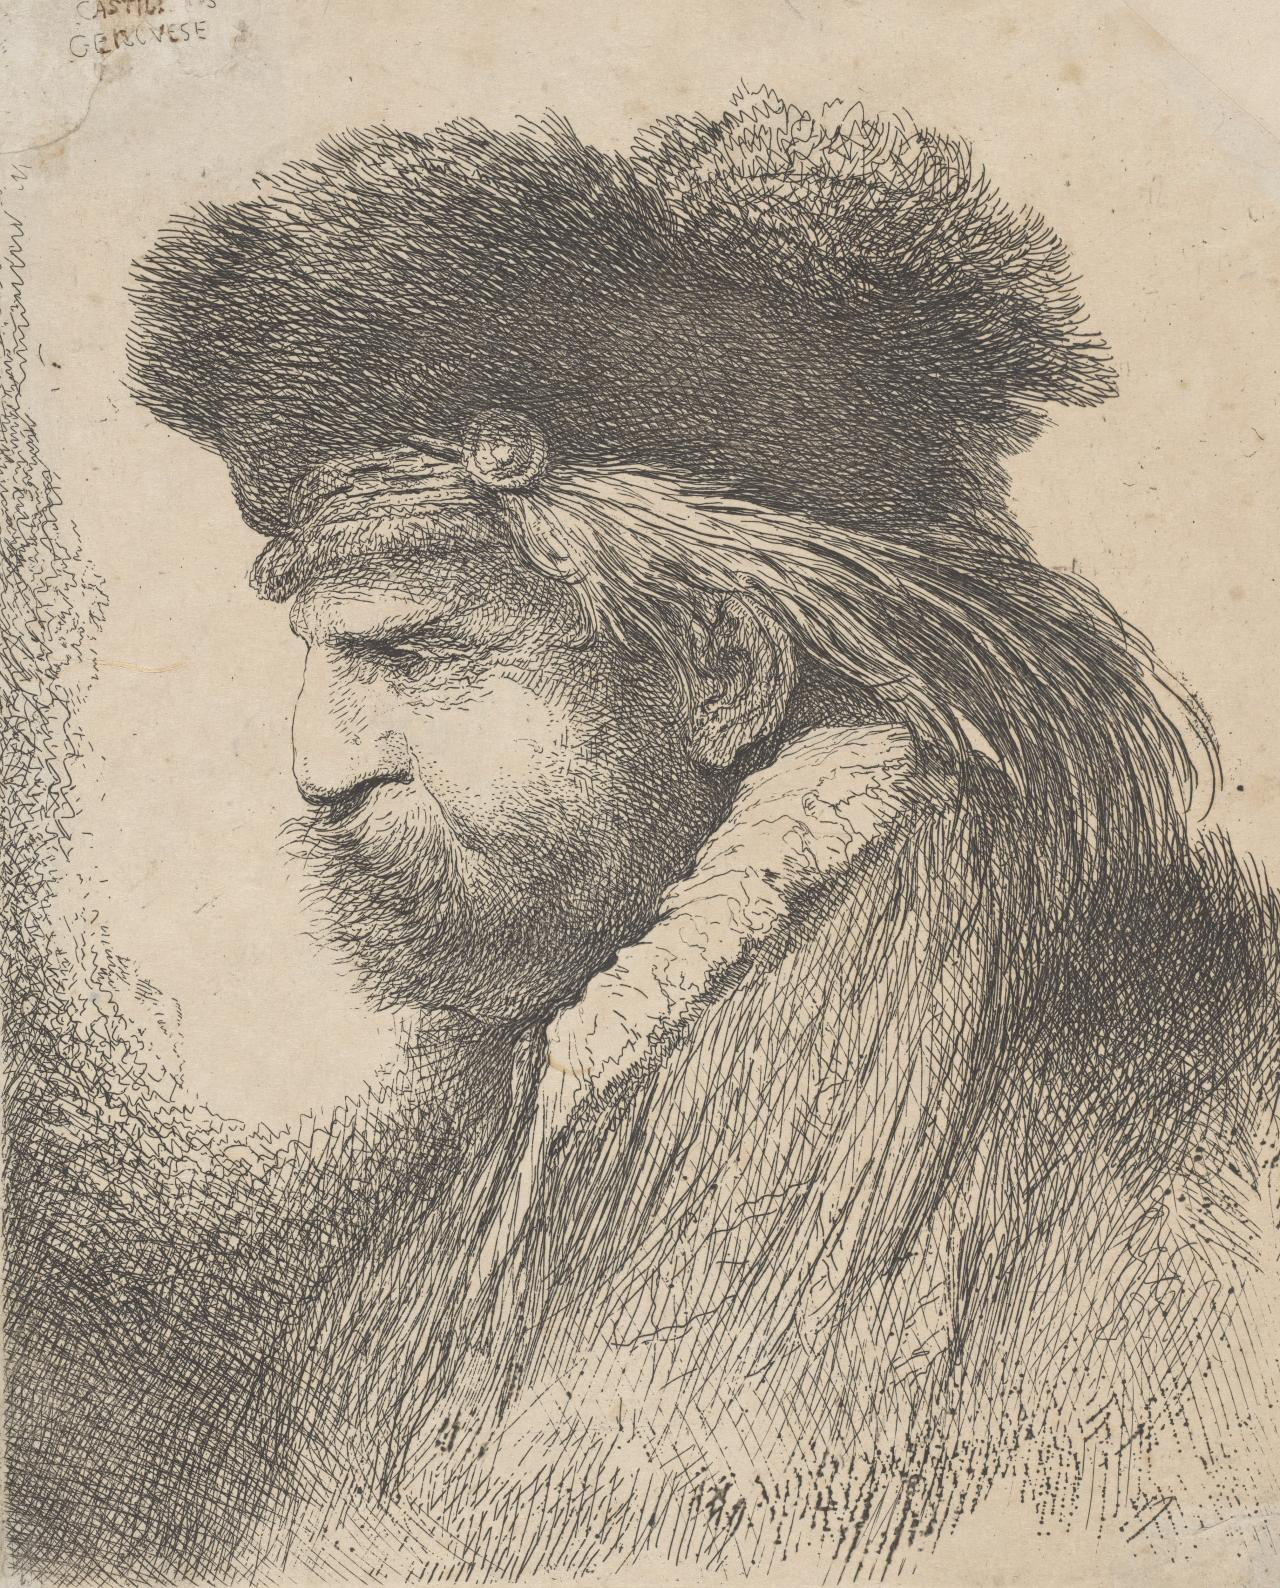 Man with a mustache, wearing a fur headdress, facing left